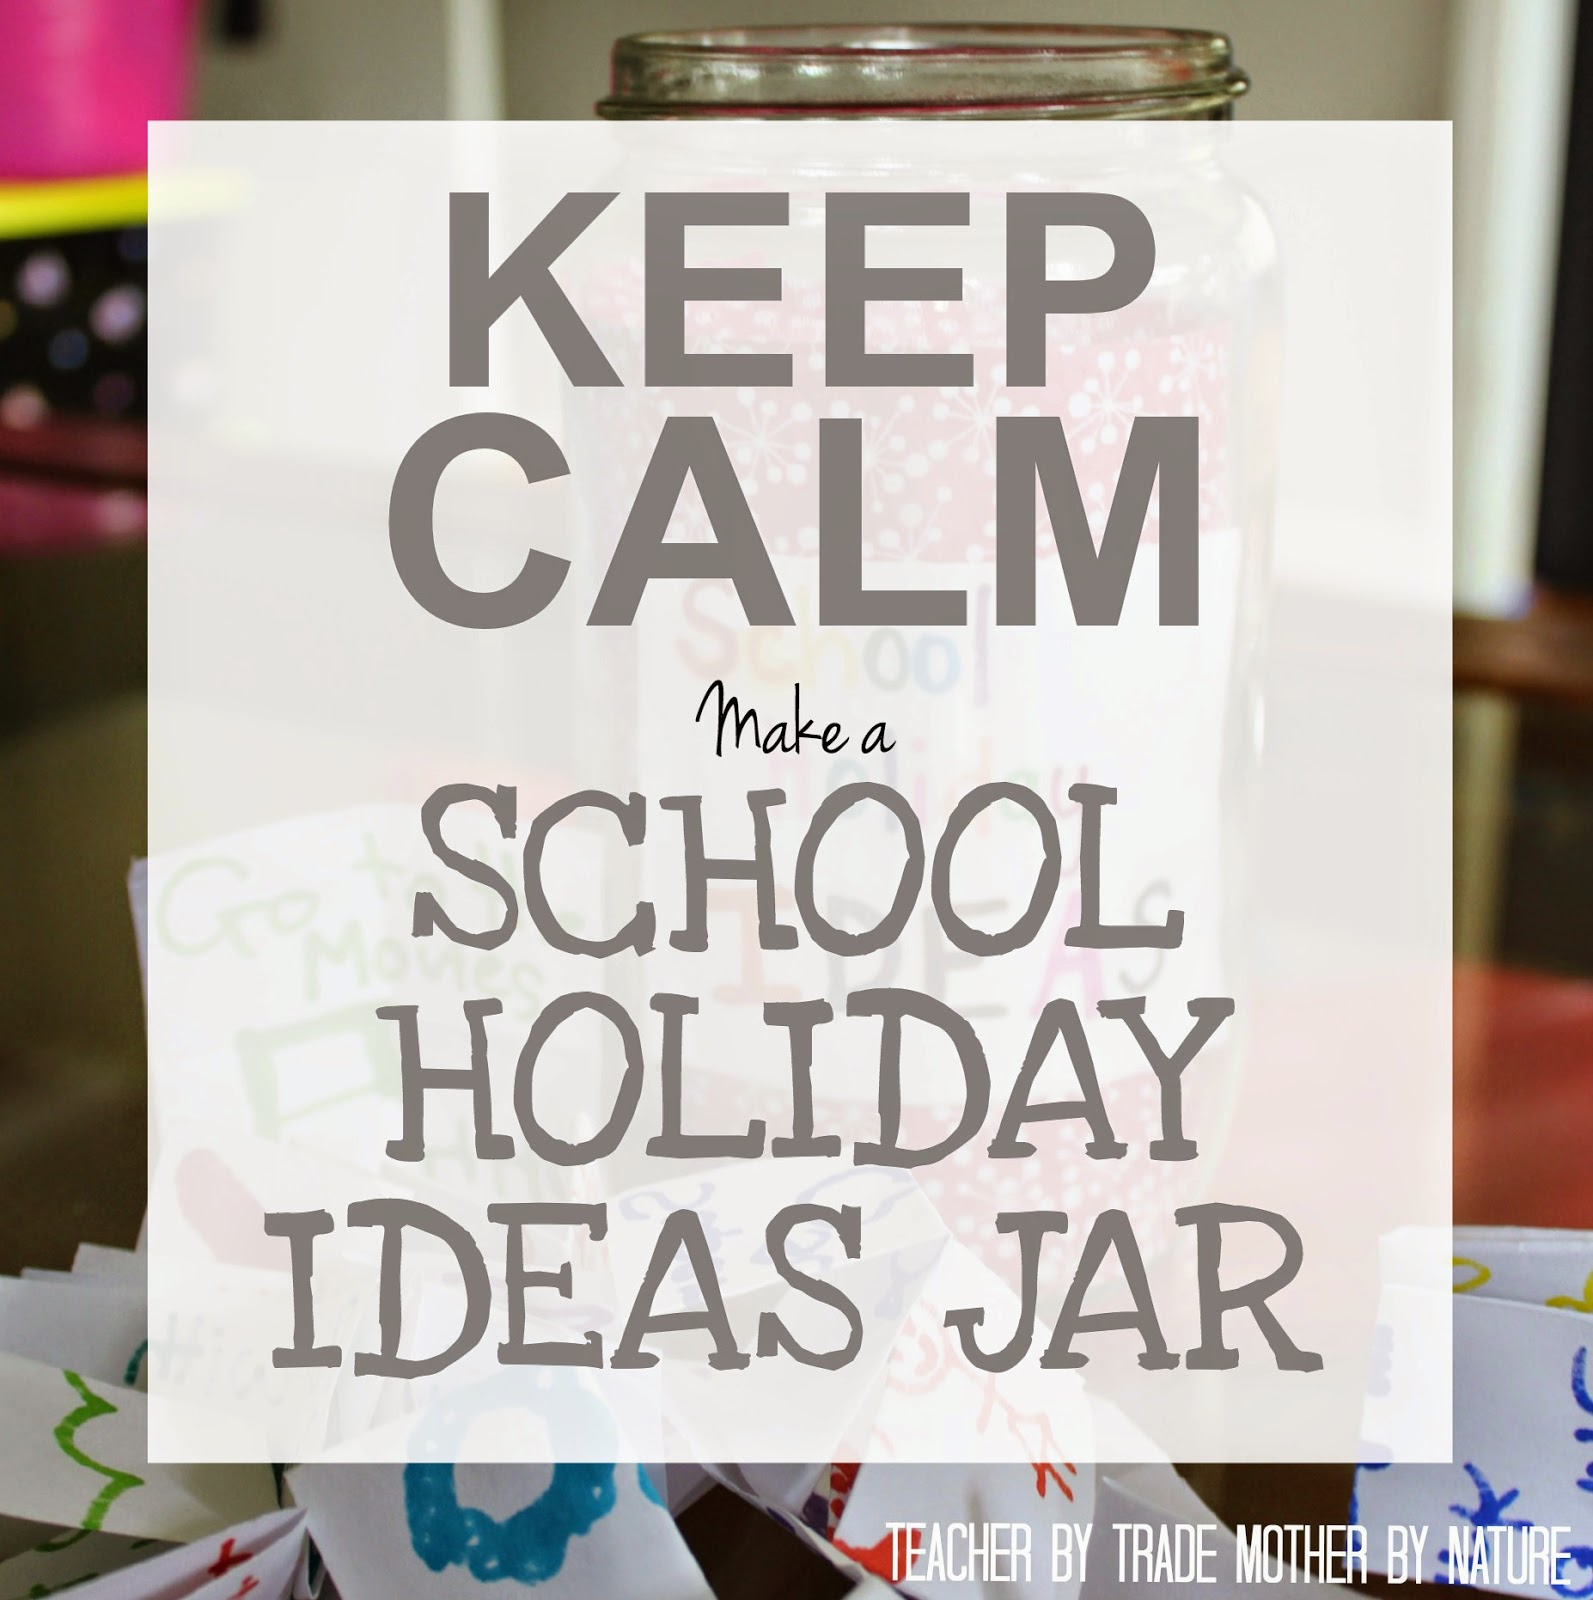 Keep Calm Make A School Holiday Ideas Jar 1word Challenge Teacher By Trade Mother By Nature